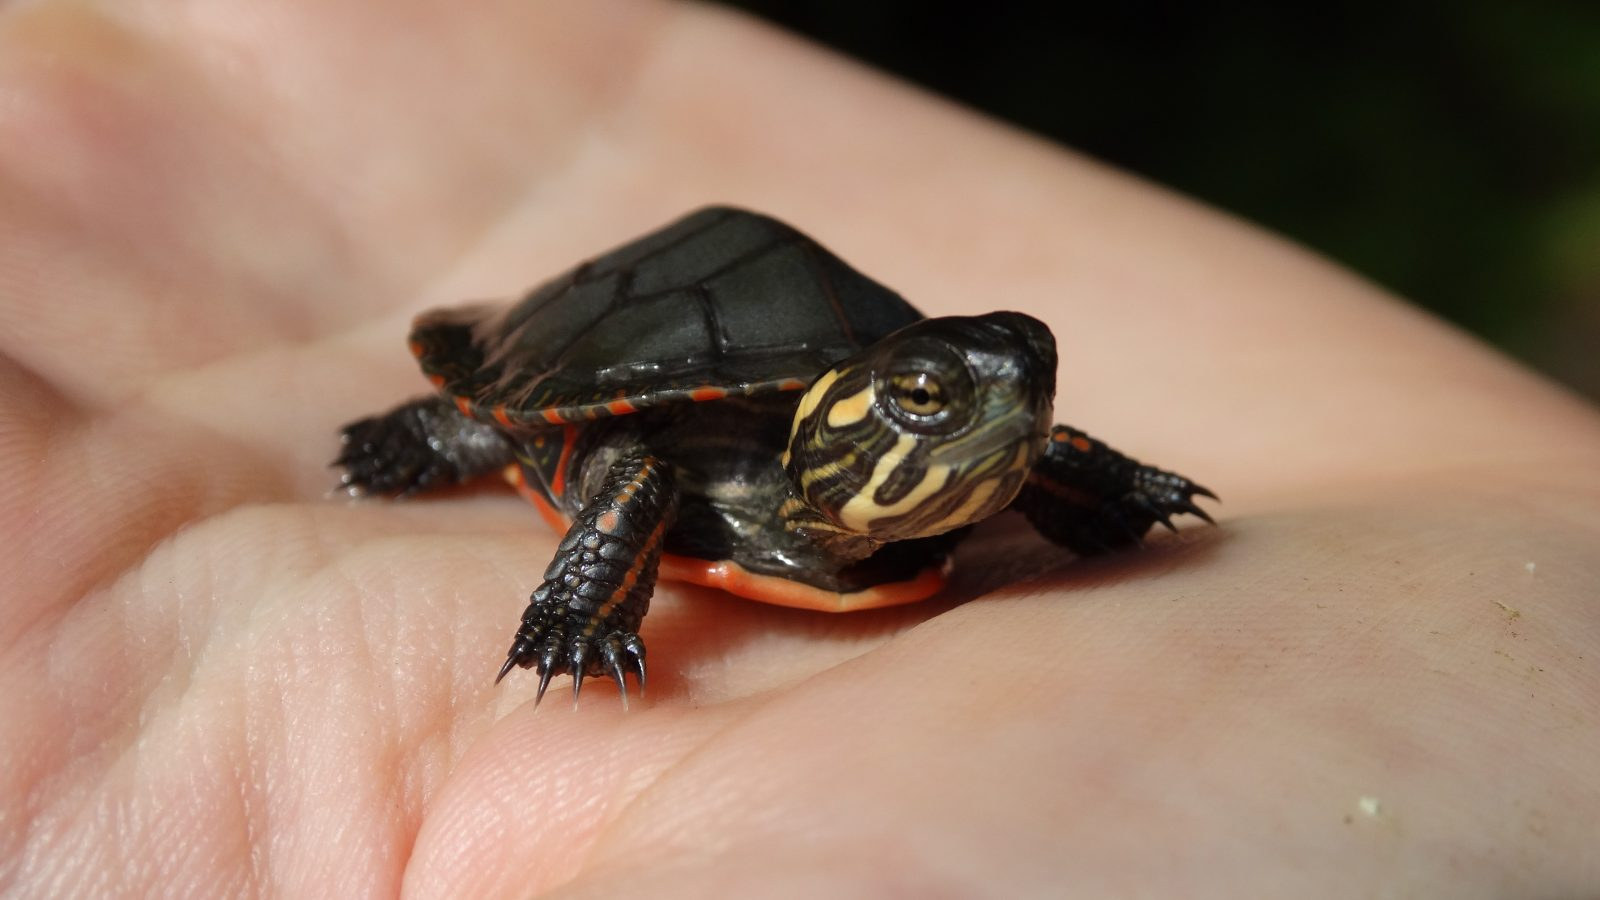 So you found a turtle…